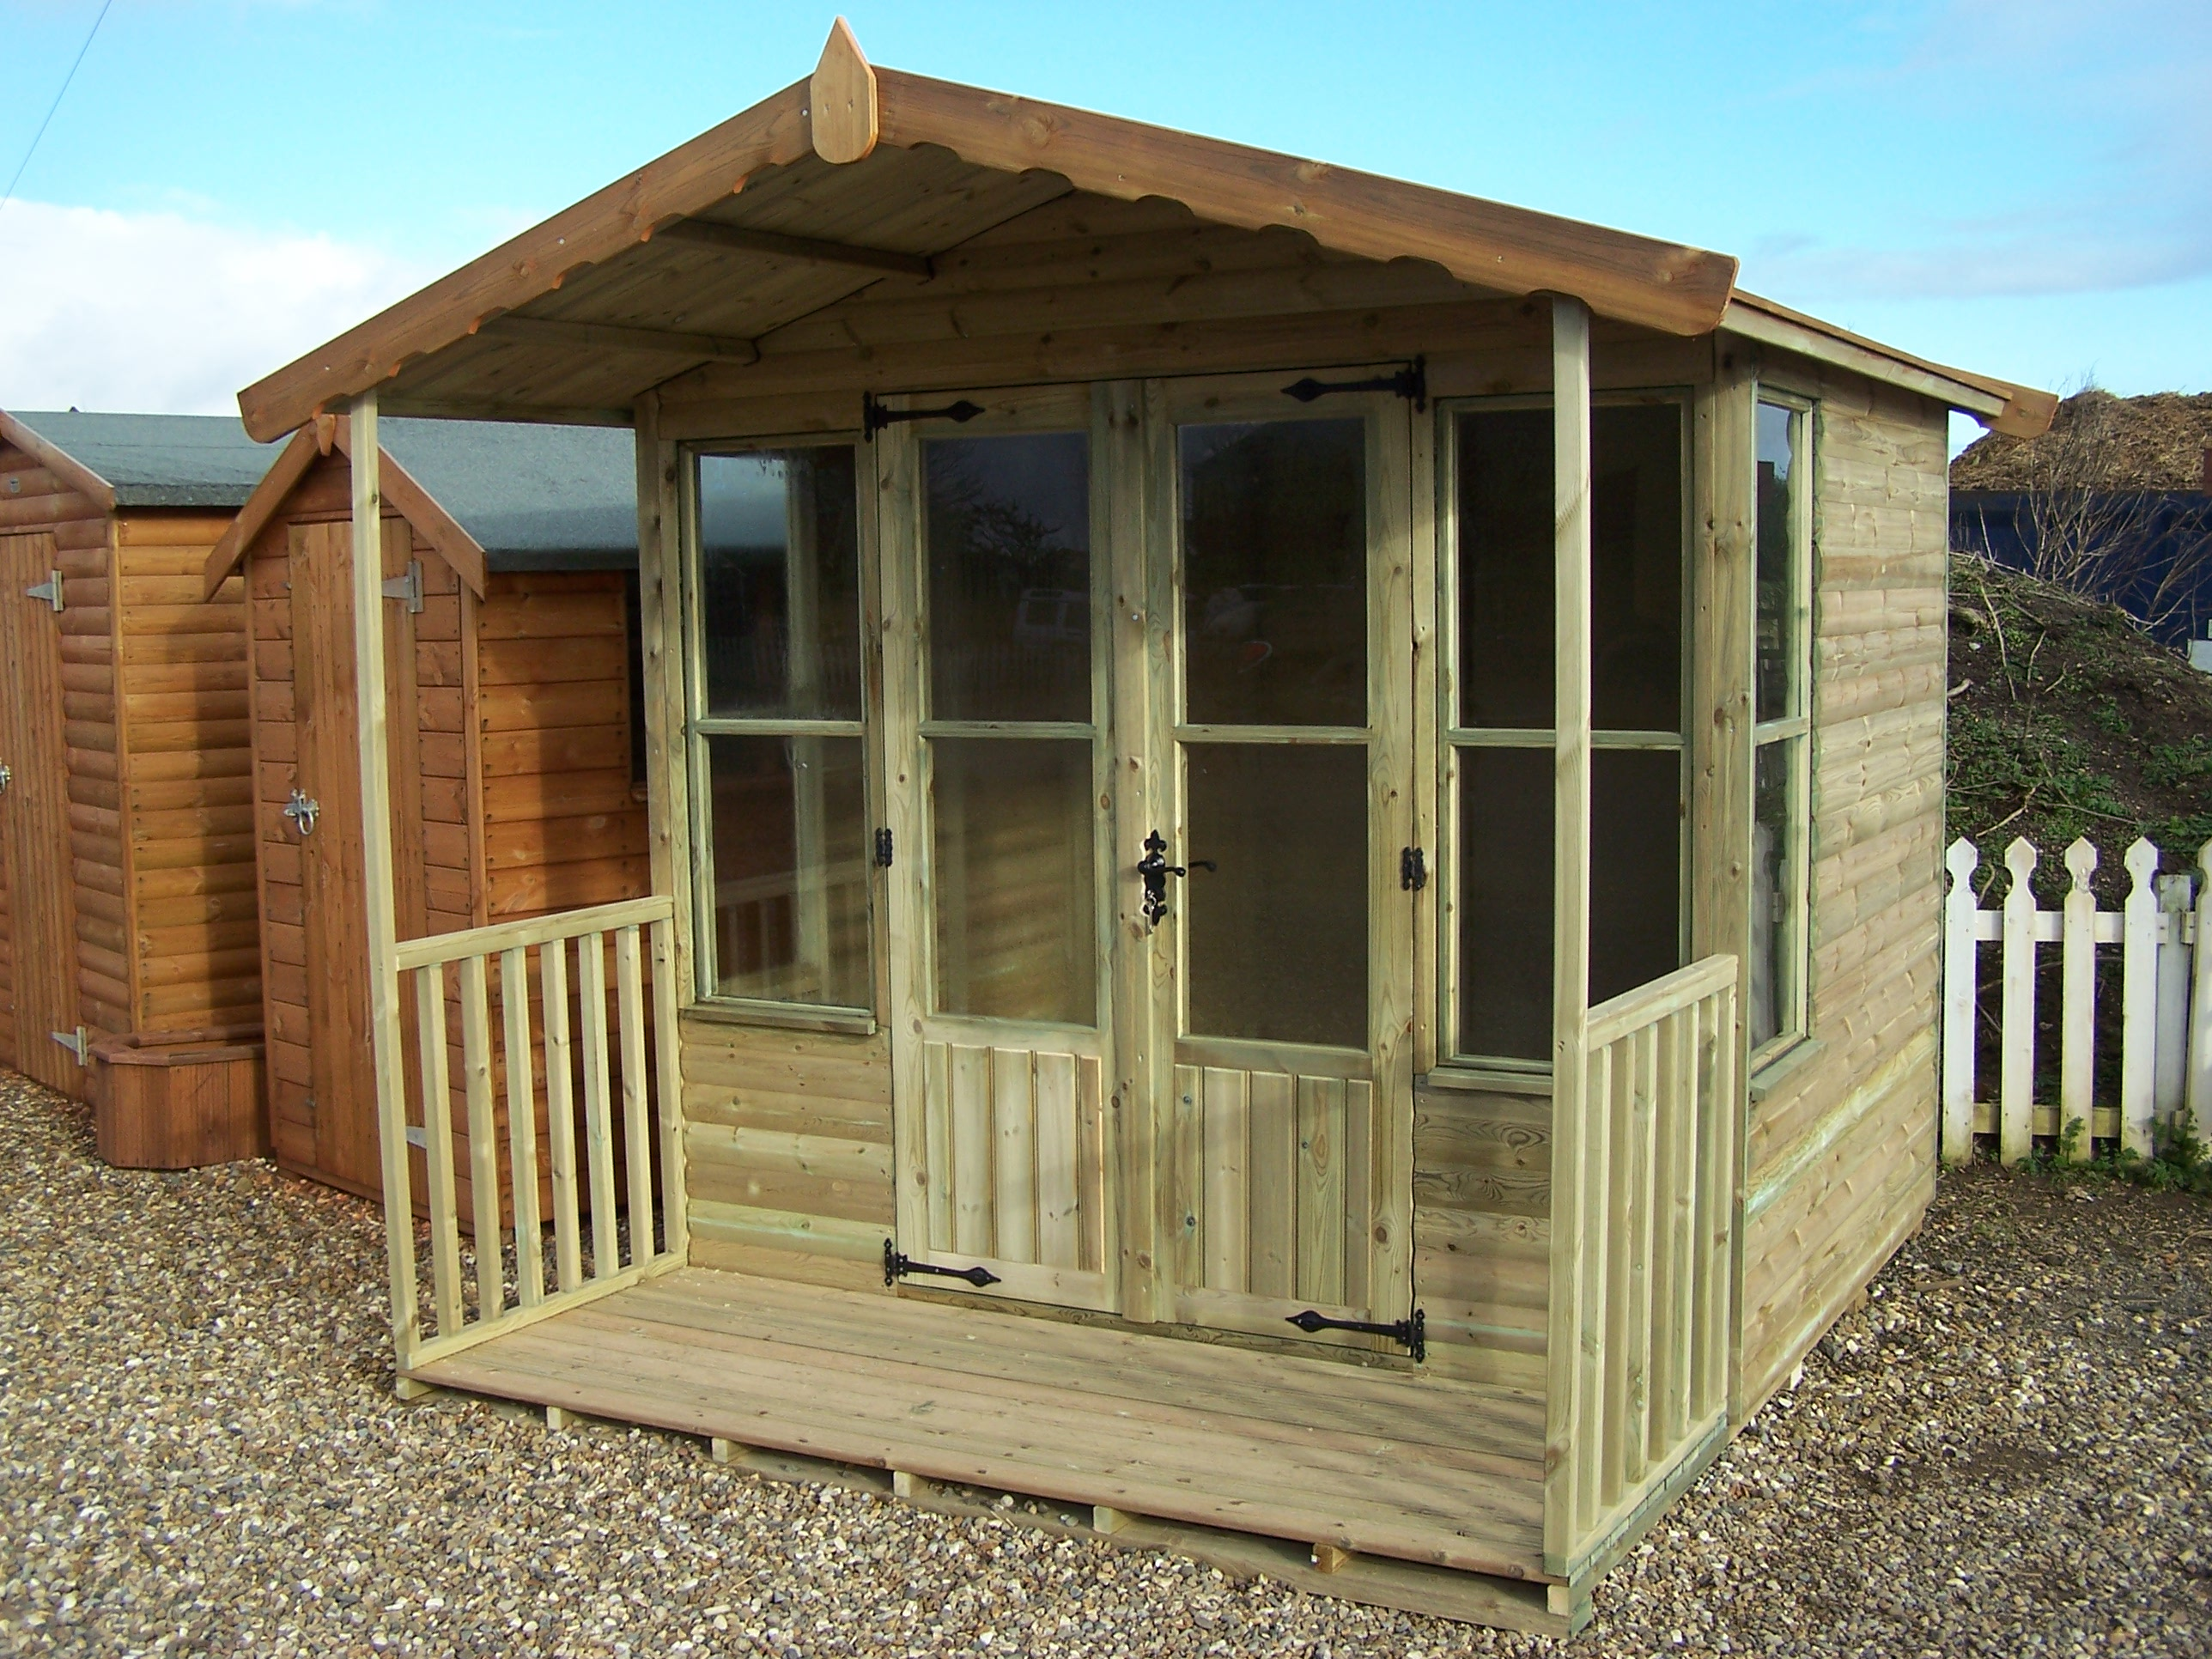 Northorpe joinery offers Summer homes builder